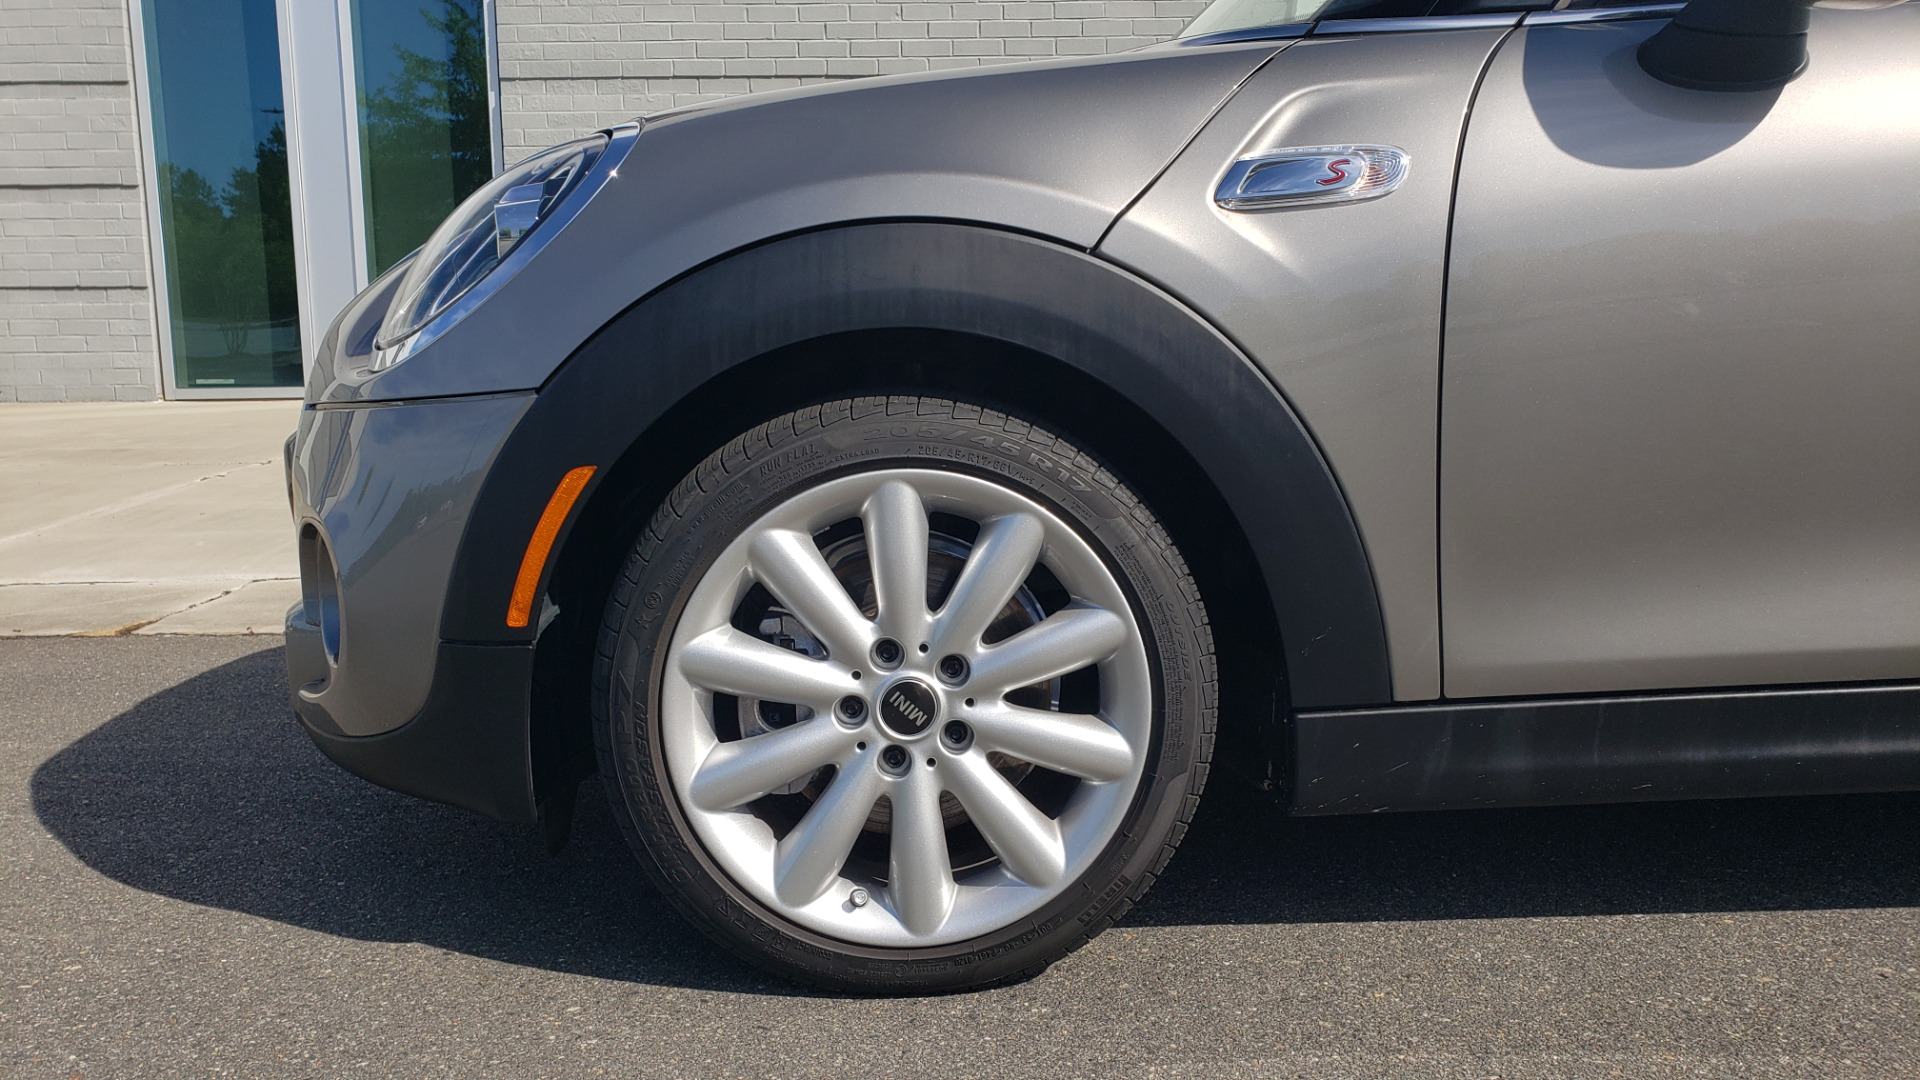 Used 2020 MINI HARDTOP 4 DOOR COOPER S / NAV / SUNROOF / AUTO / H/K SND / REARVIEW for sale $28,495 at Formula Imports in Charlotte NC 28227 82